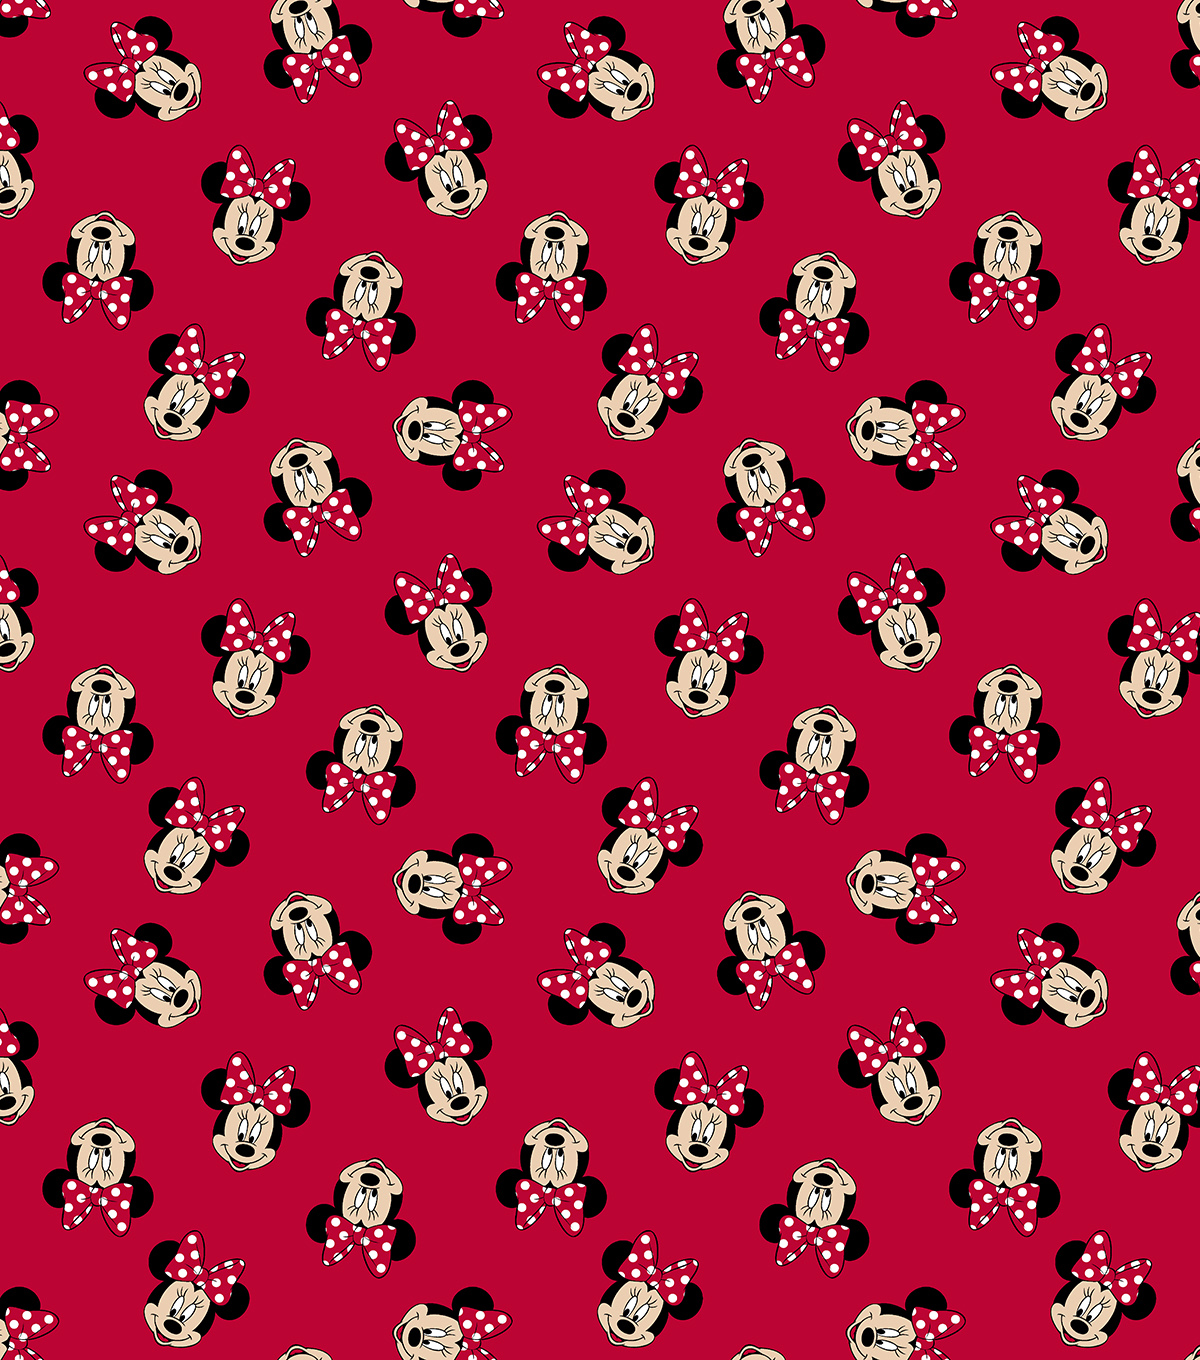 Disney Minnie Mouse Cotton Fabric -Tossed Minnie Heads